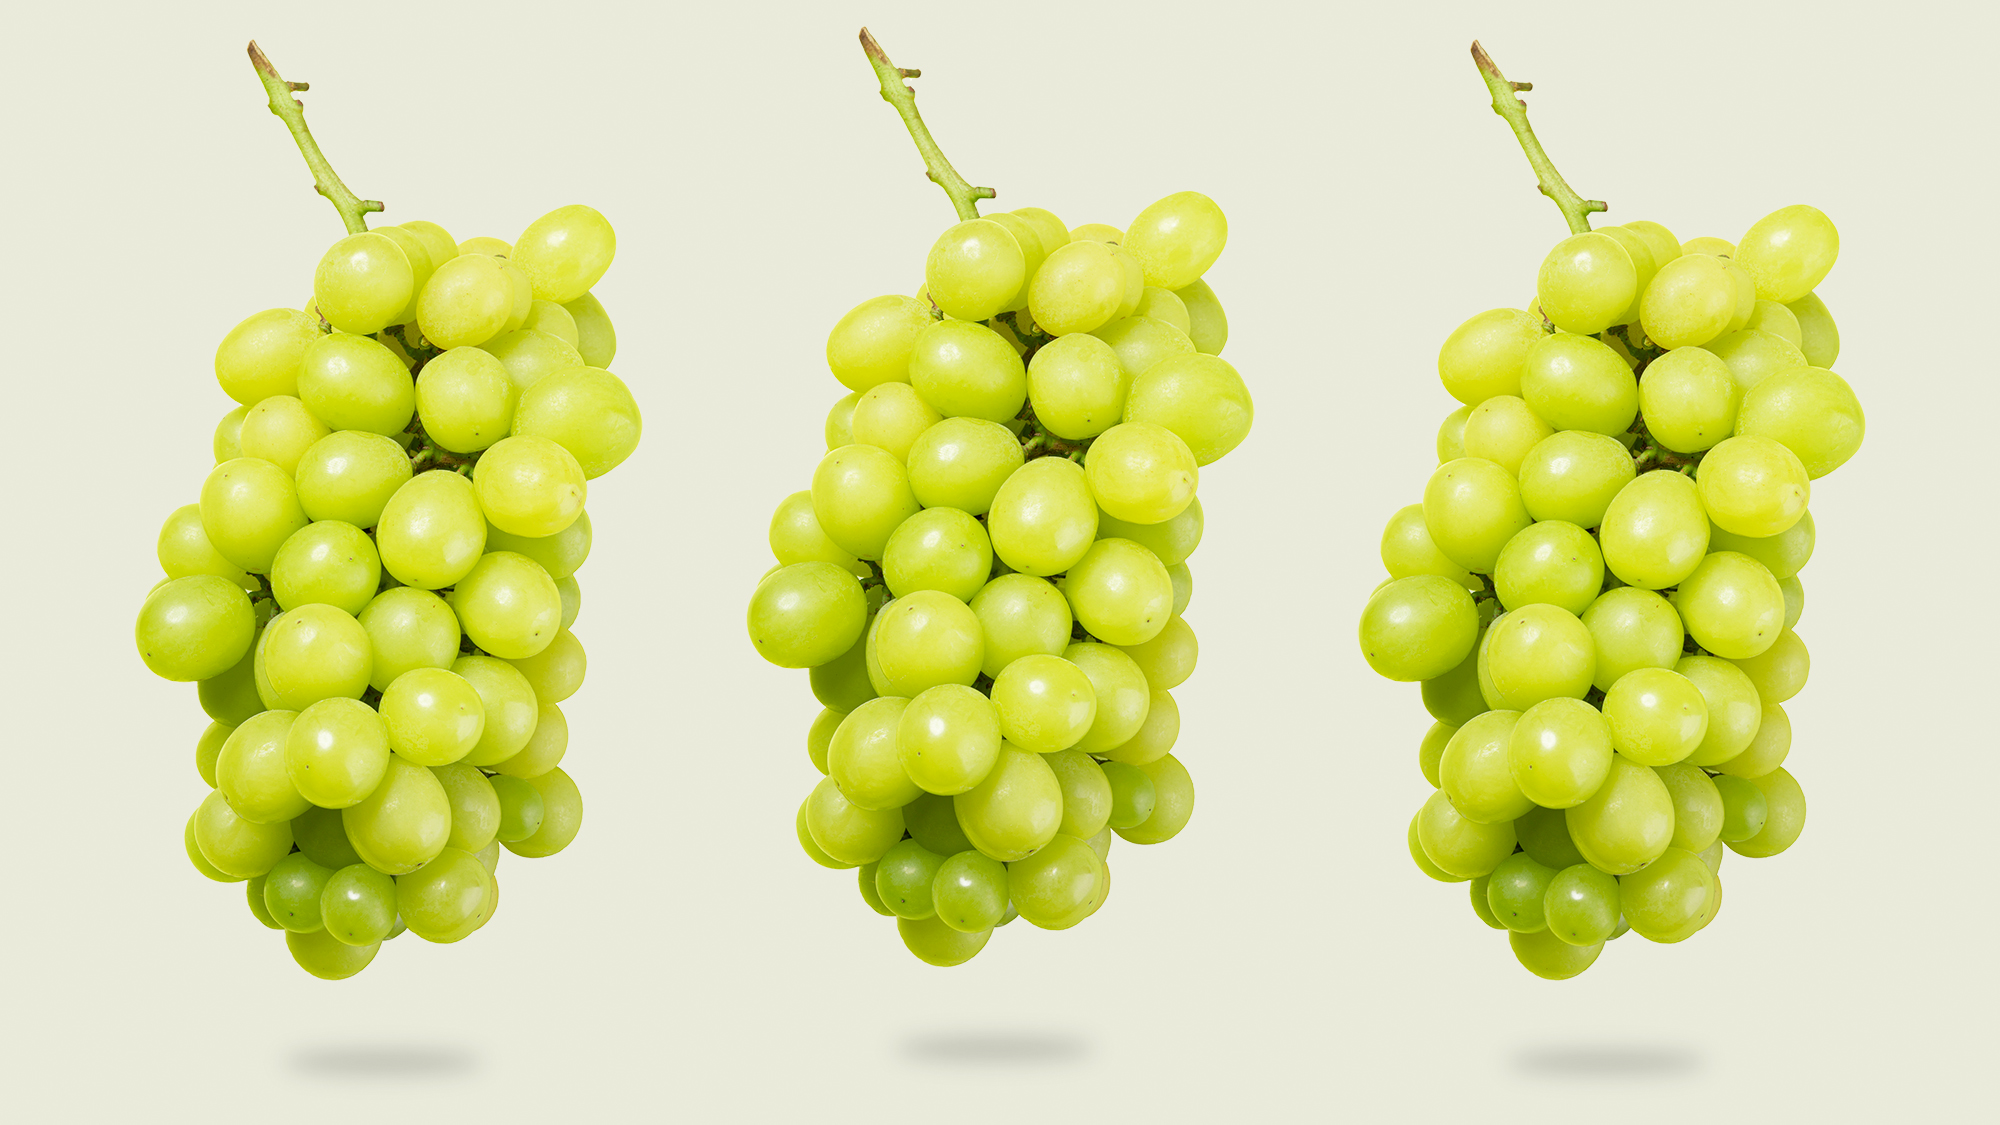 3 bunches of grapes floating on a designed background